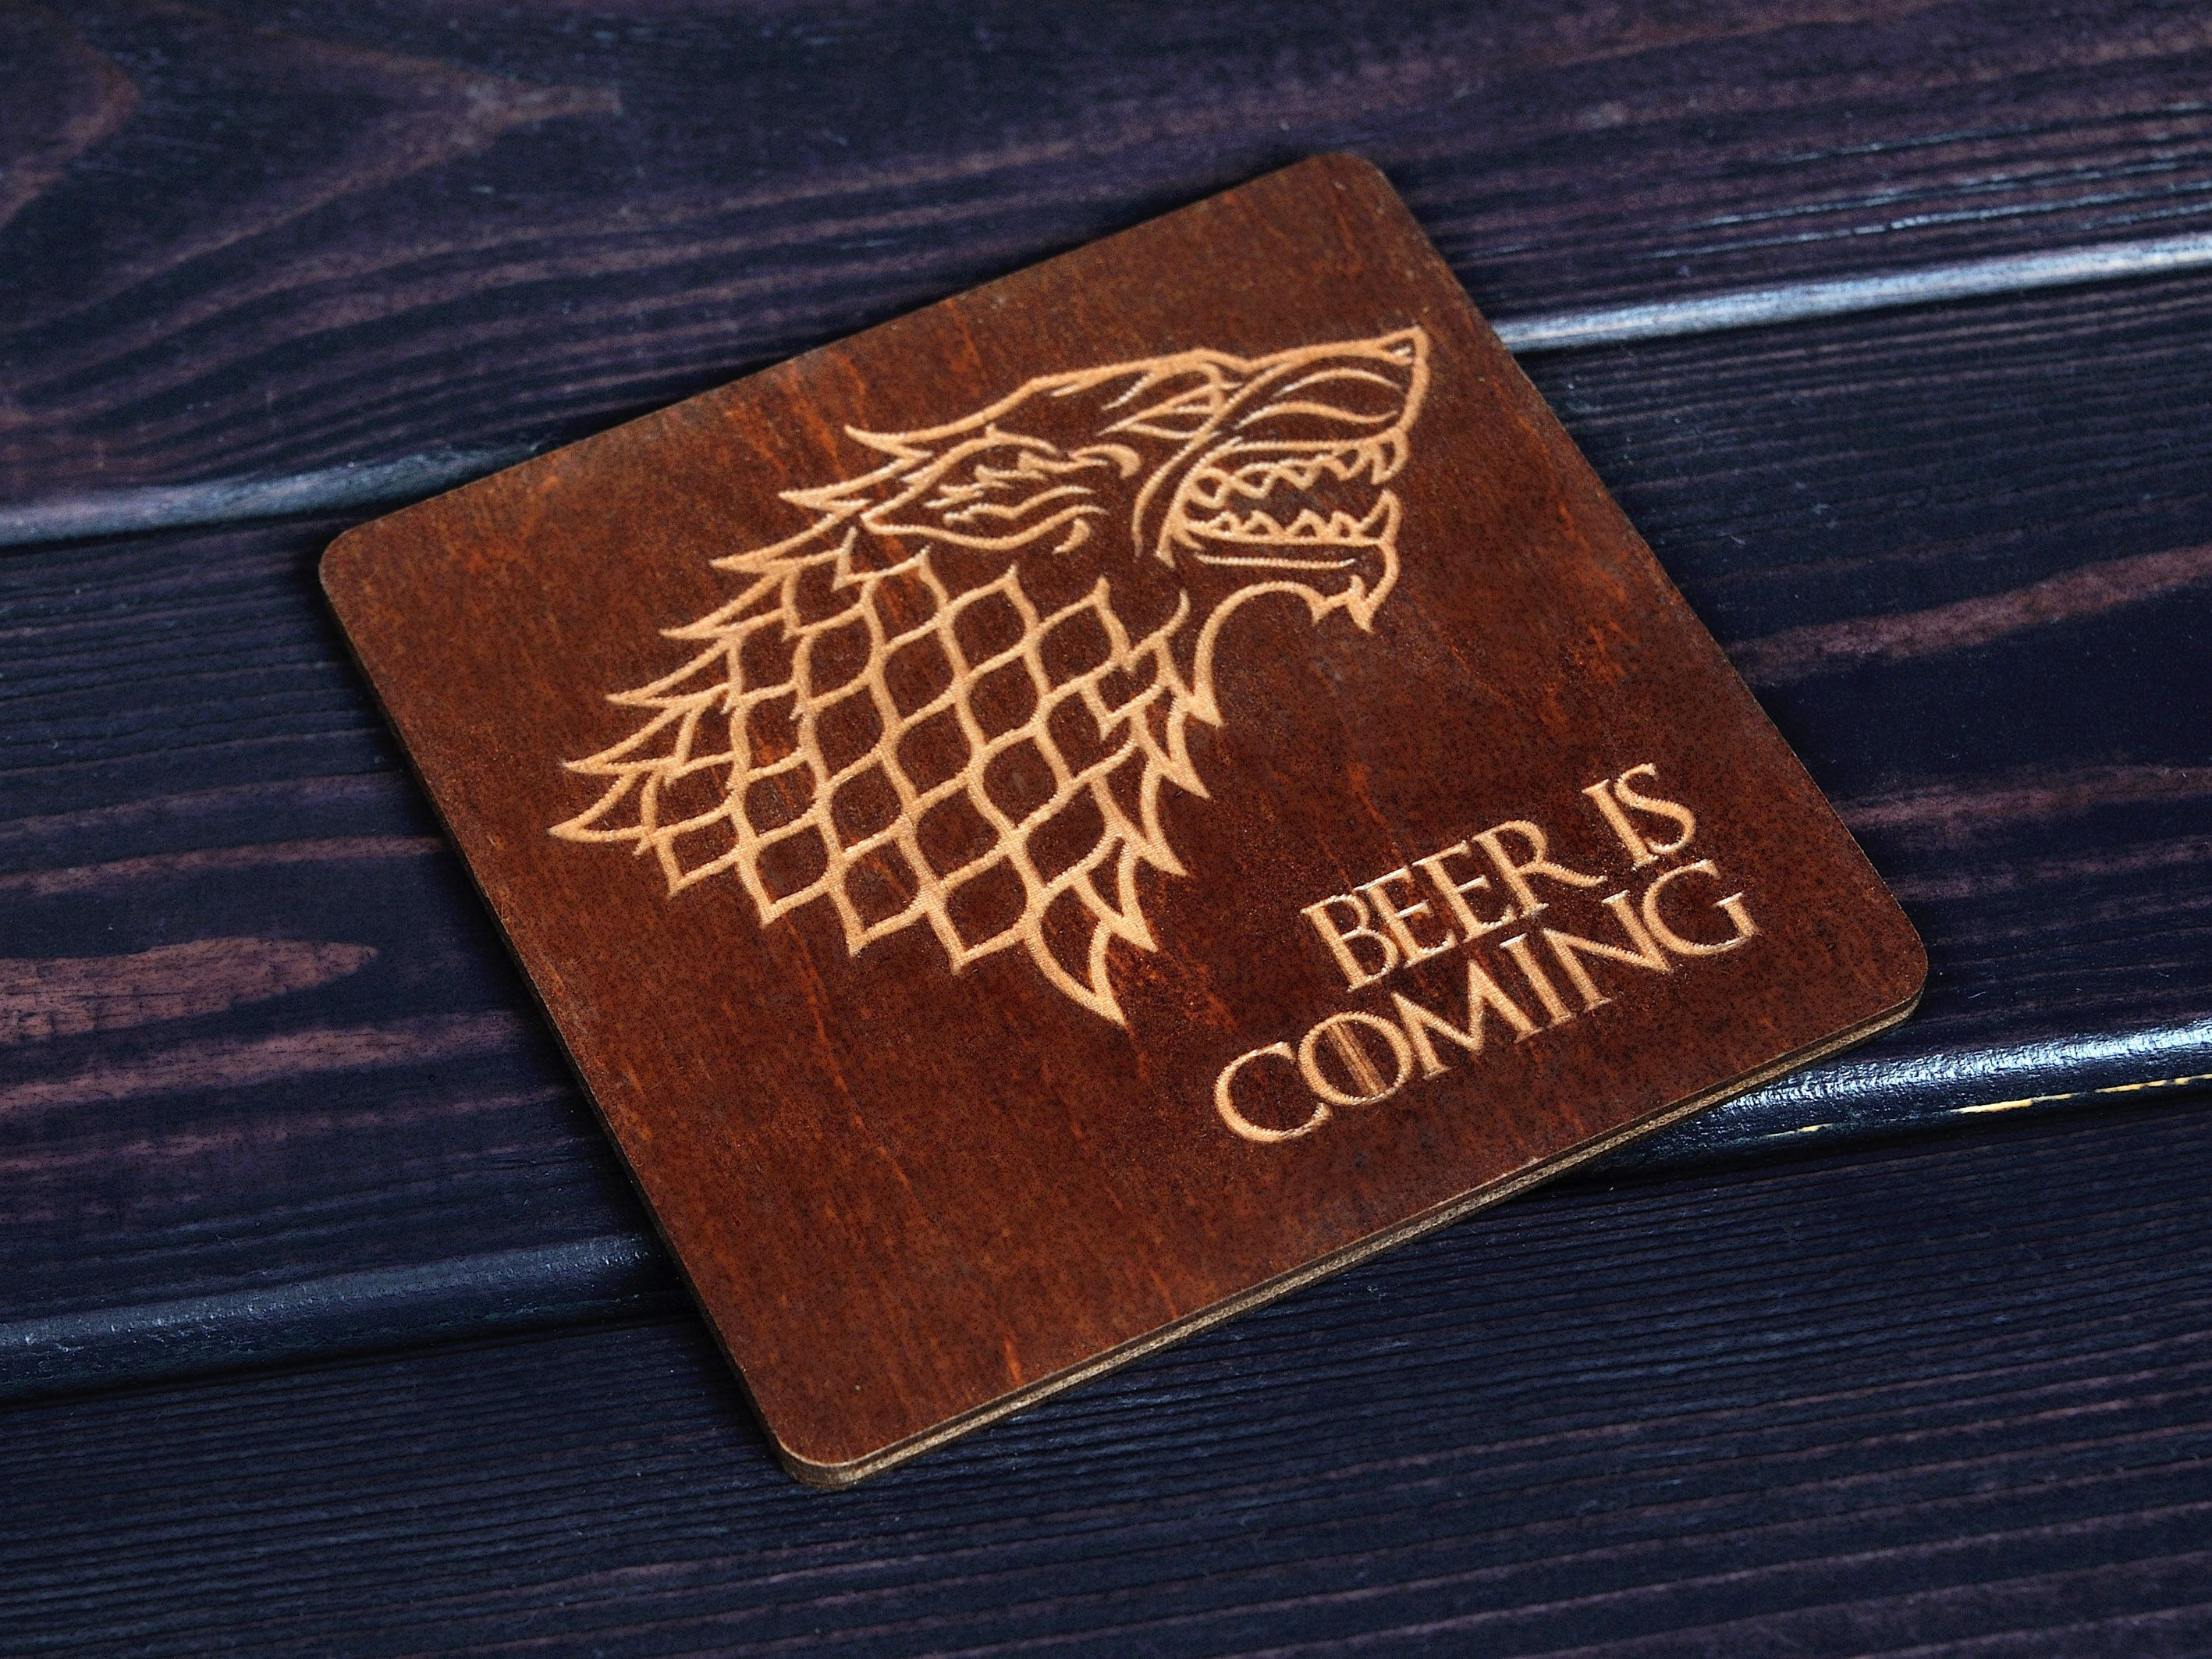 SET of 4 Game of thrones Coaster Beer is coming 4x4 in